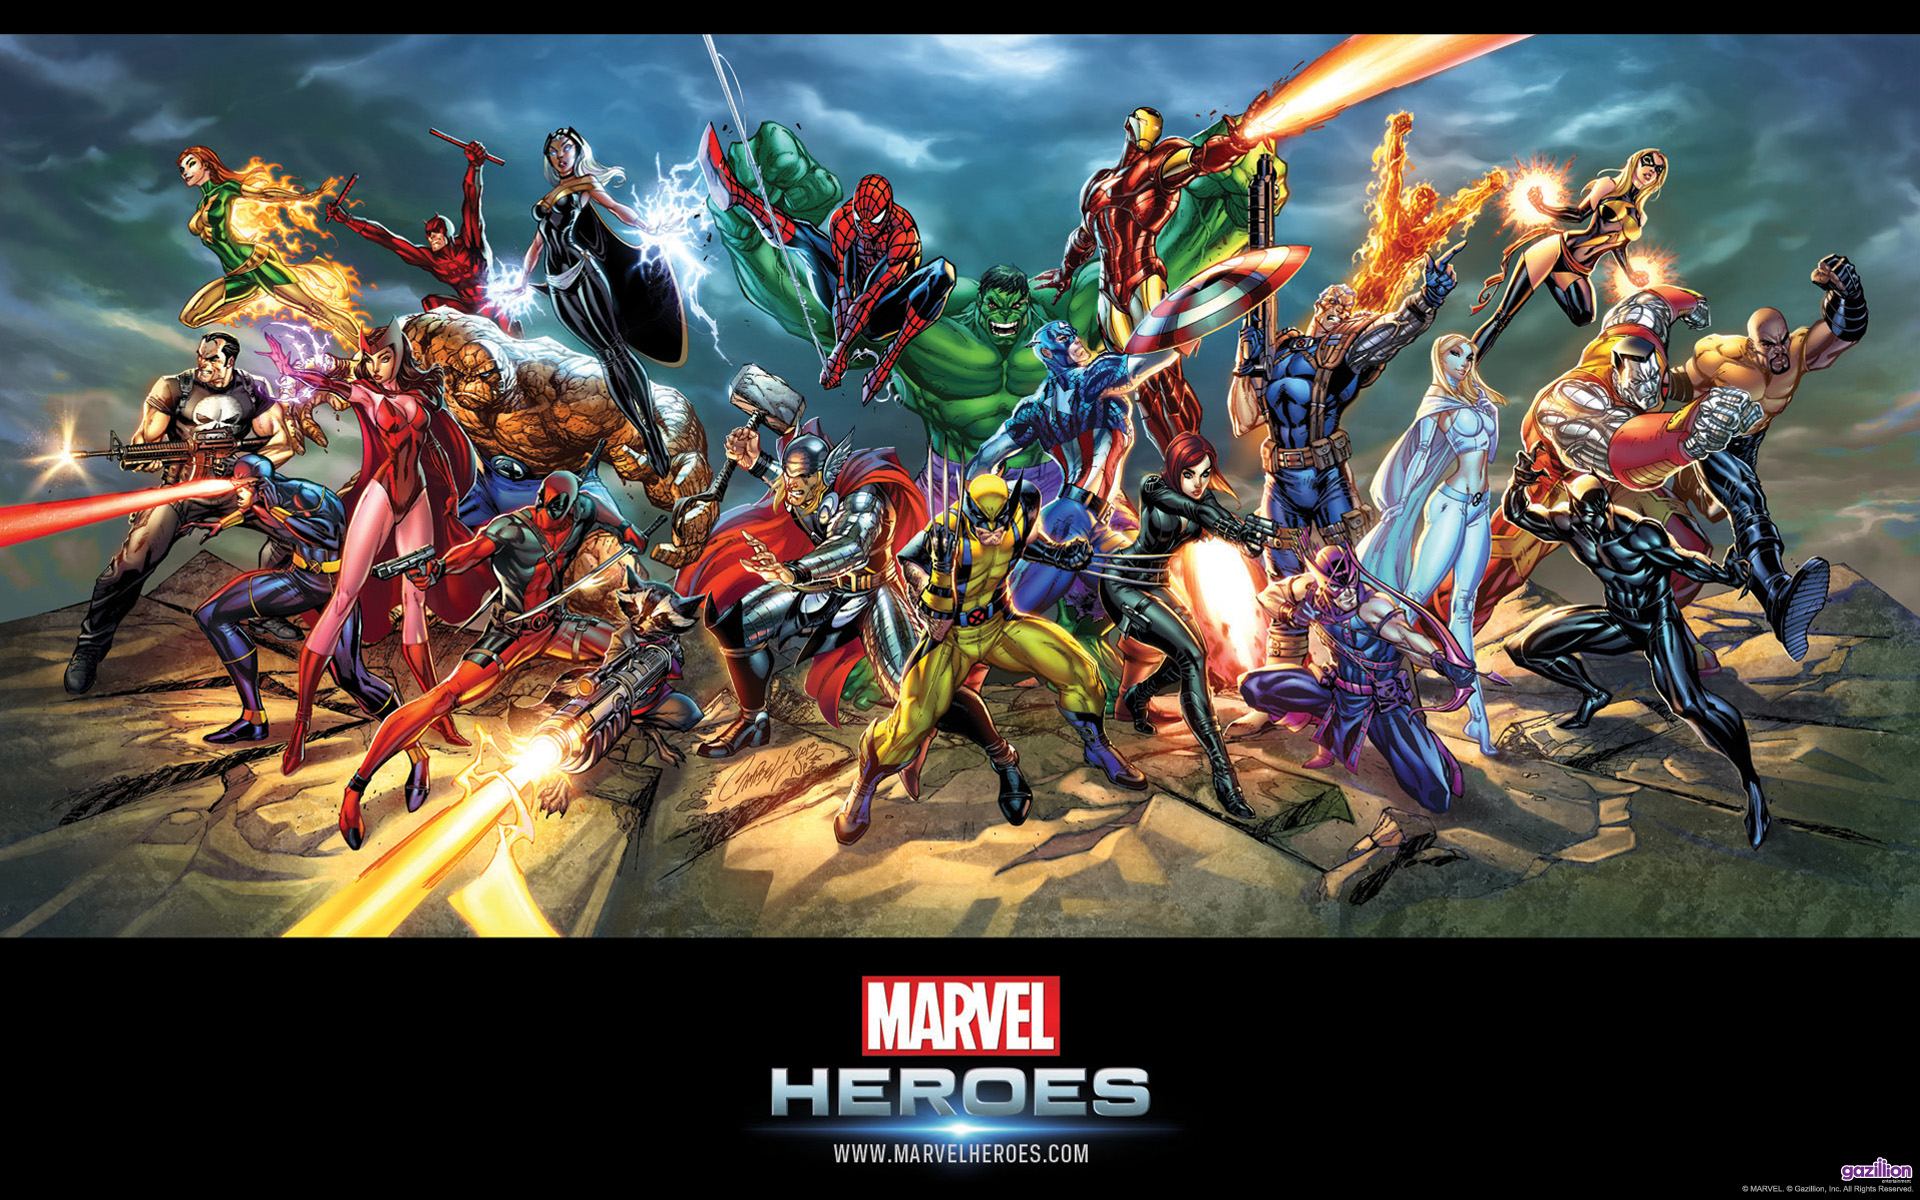 Fantastic Wallpaper Marvel Dual Monitor - Marvel-Pictures-Wallpapers-002  Gallery_70210.jpg